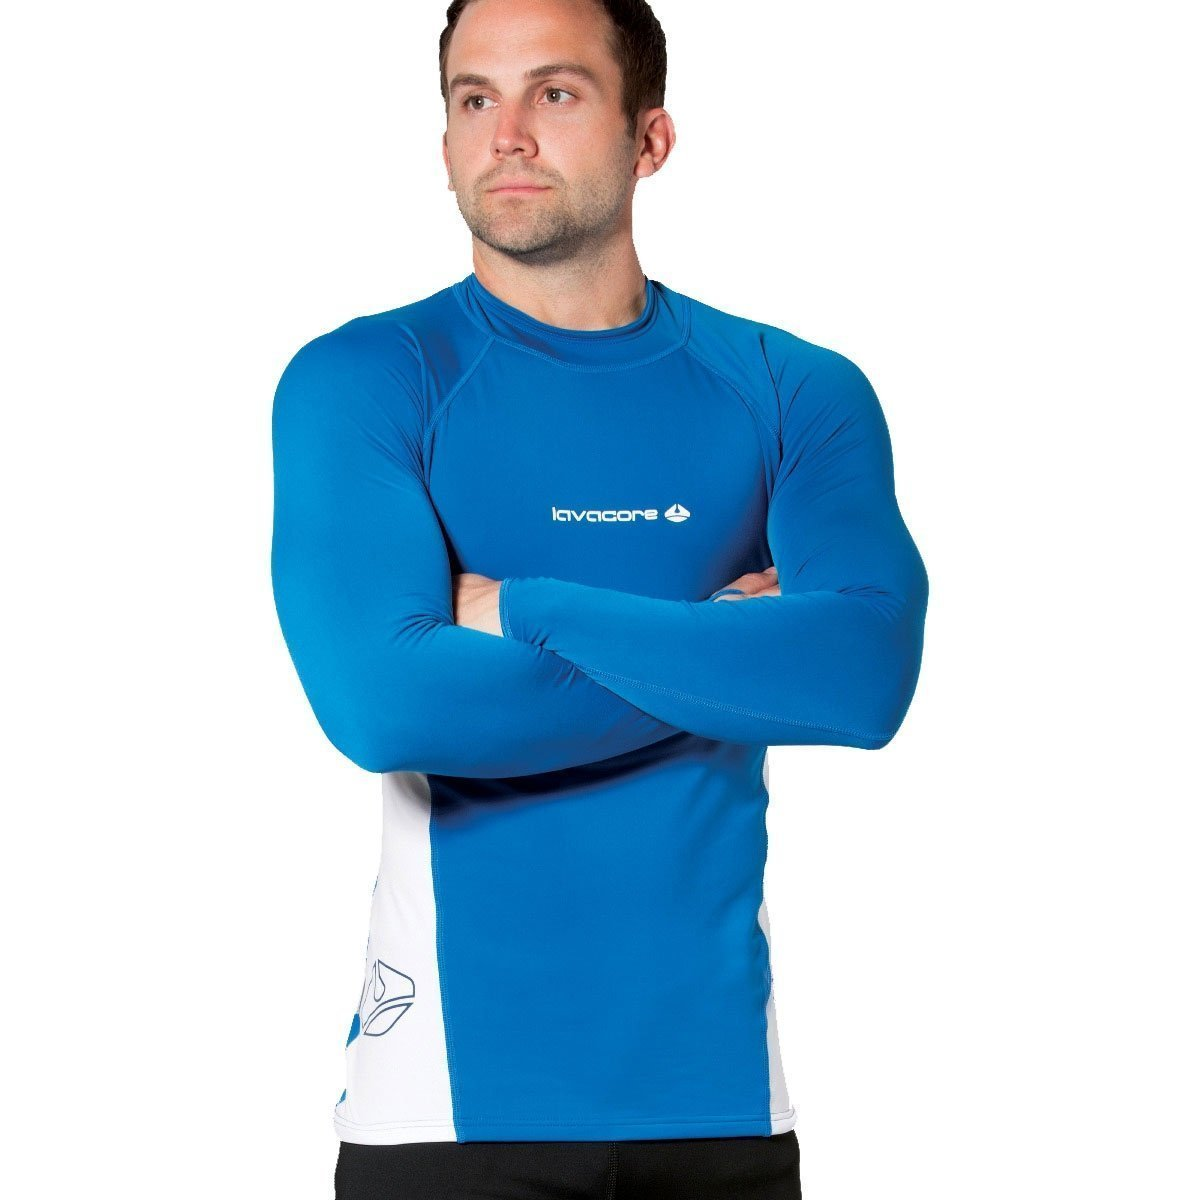 New Men's LavaCore Long Sleeve LavaSkin Shirt - Blue/White (Large) for Scuba Diving, Surfing, Kayaking, Rafting, Paddling & Many Other WaterSports by Lavacore